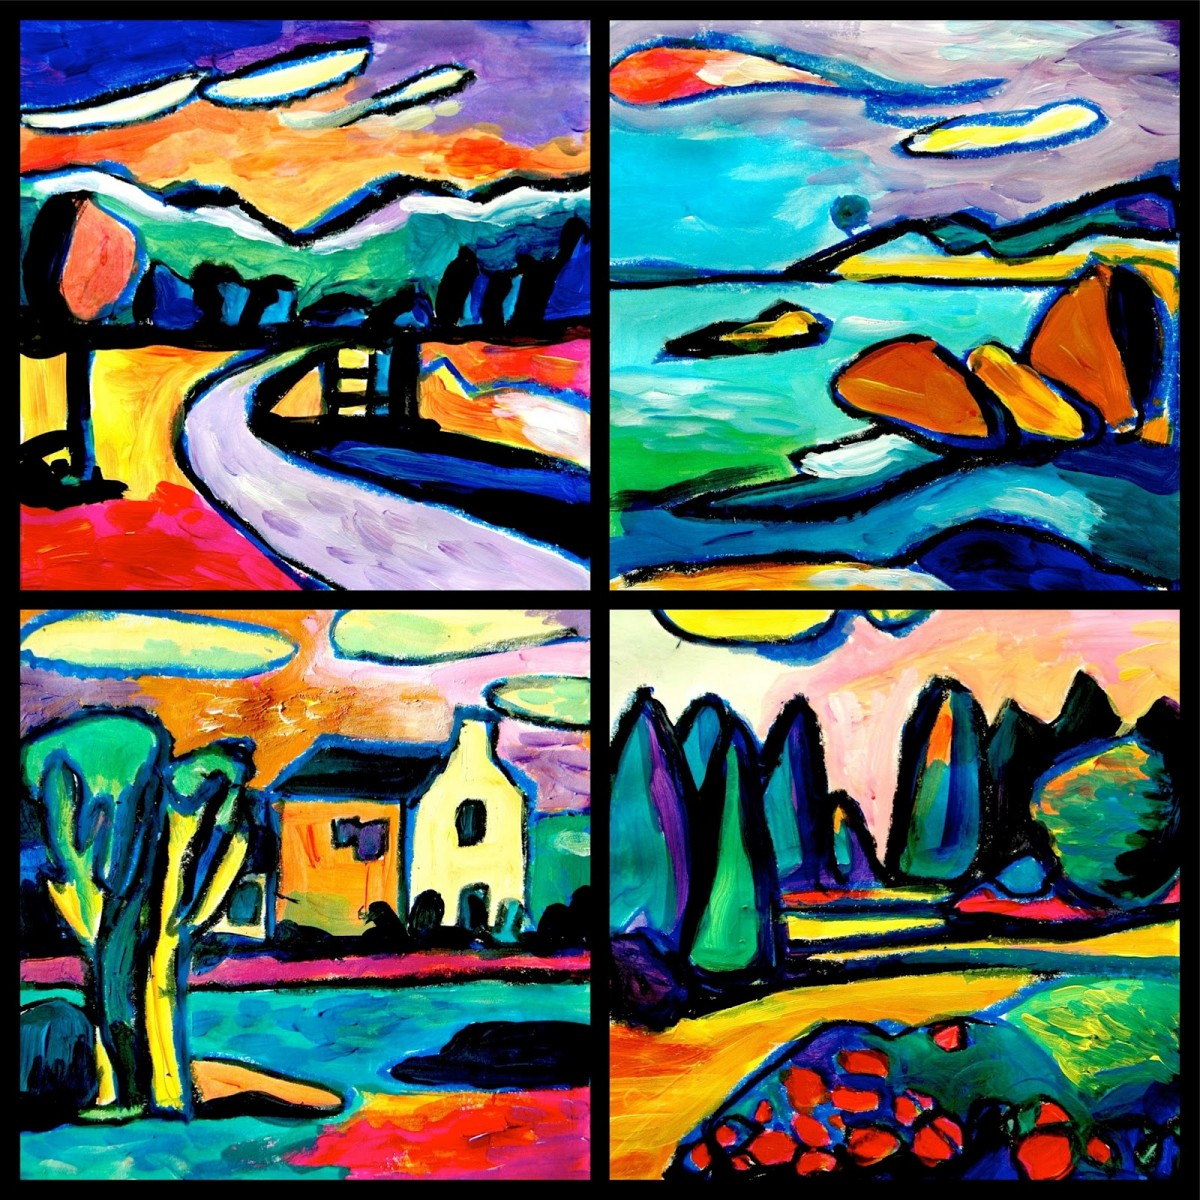 From A Photo Of Simple Landscape I Tried To Inspire My Paintings In The Style Kandinsky He Painted Many Landscapes Where It Is Recognizable